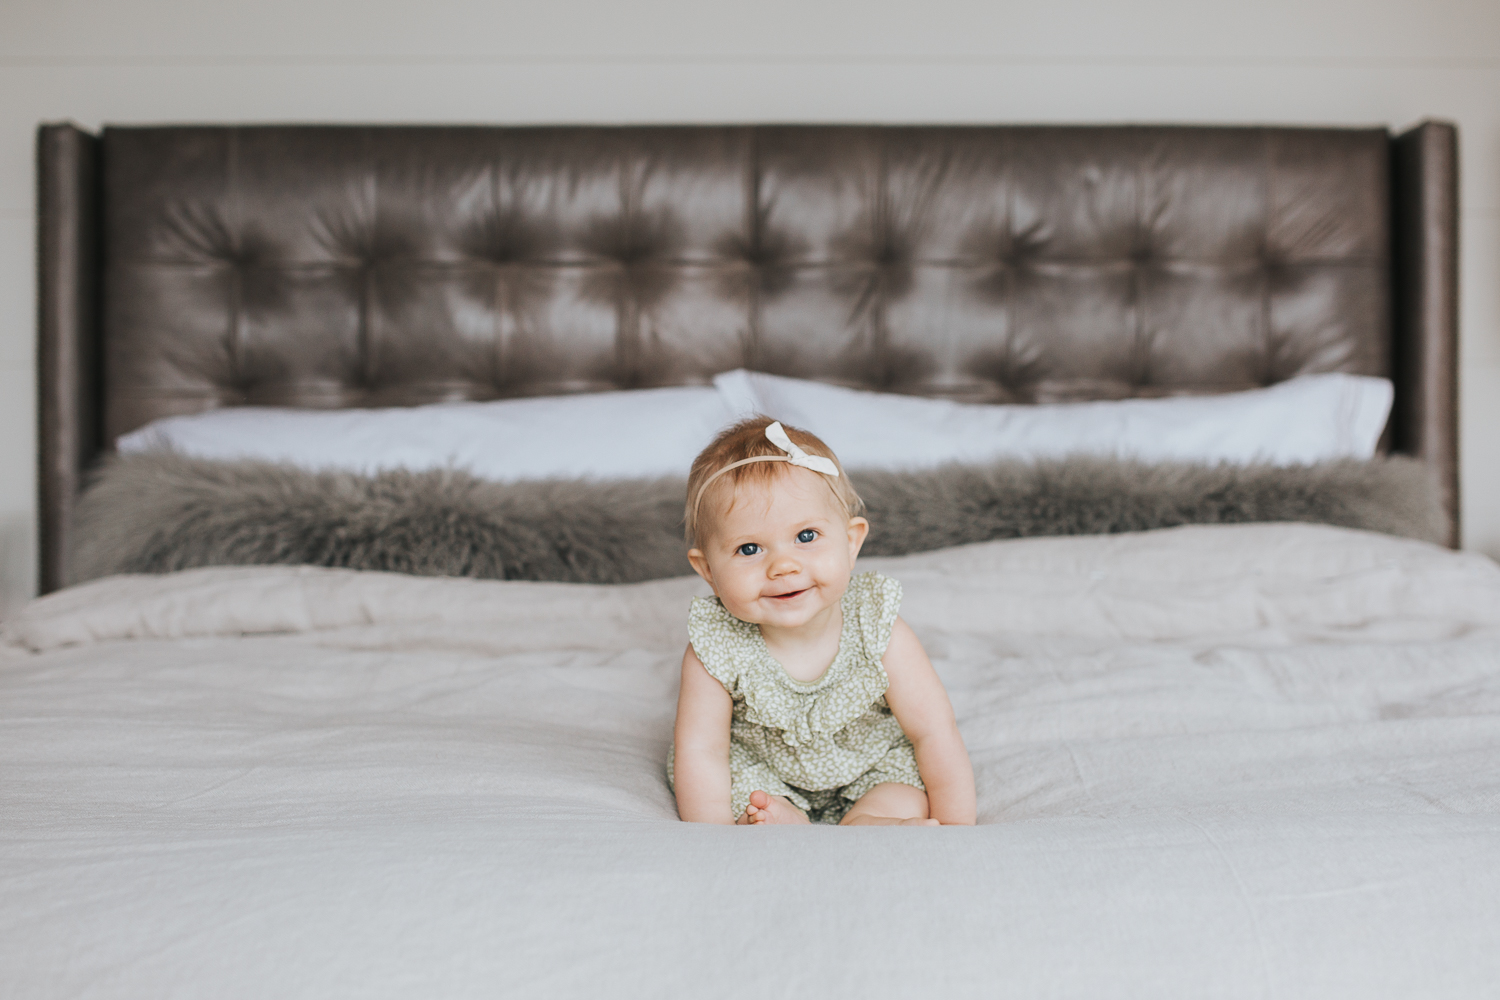 6 month old baby girl with blonde hair and blue eyes sitting on bed smiling at camera - Barrie In-home Family Photography